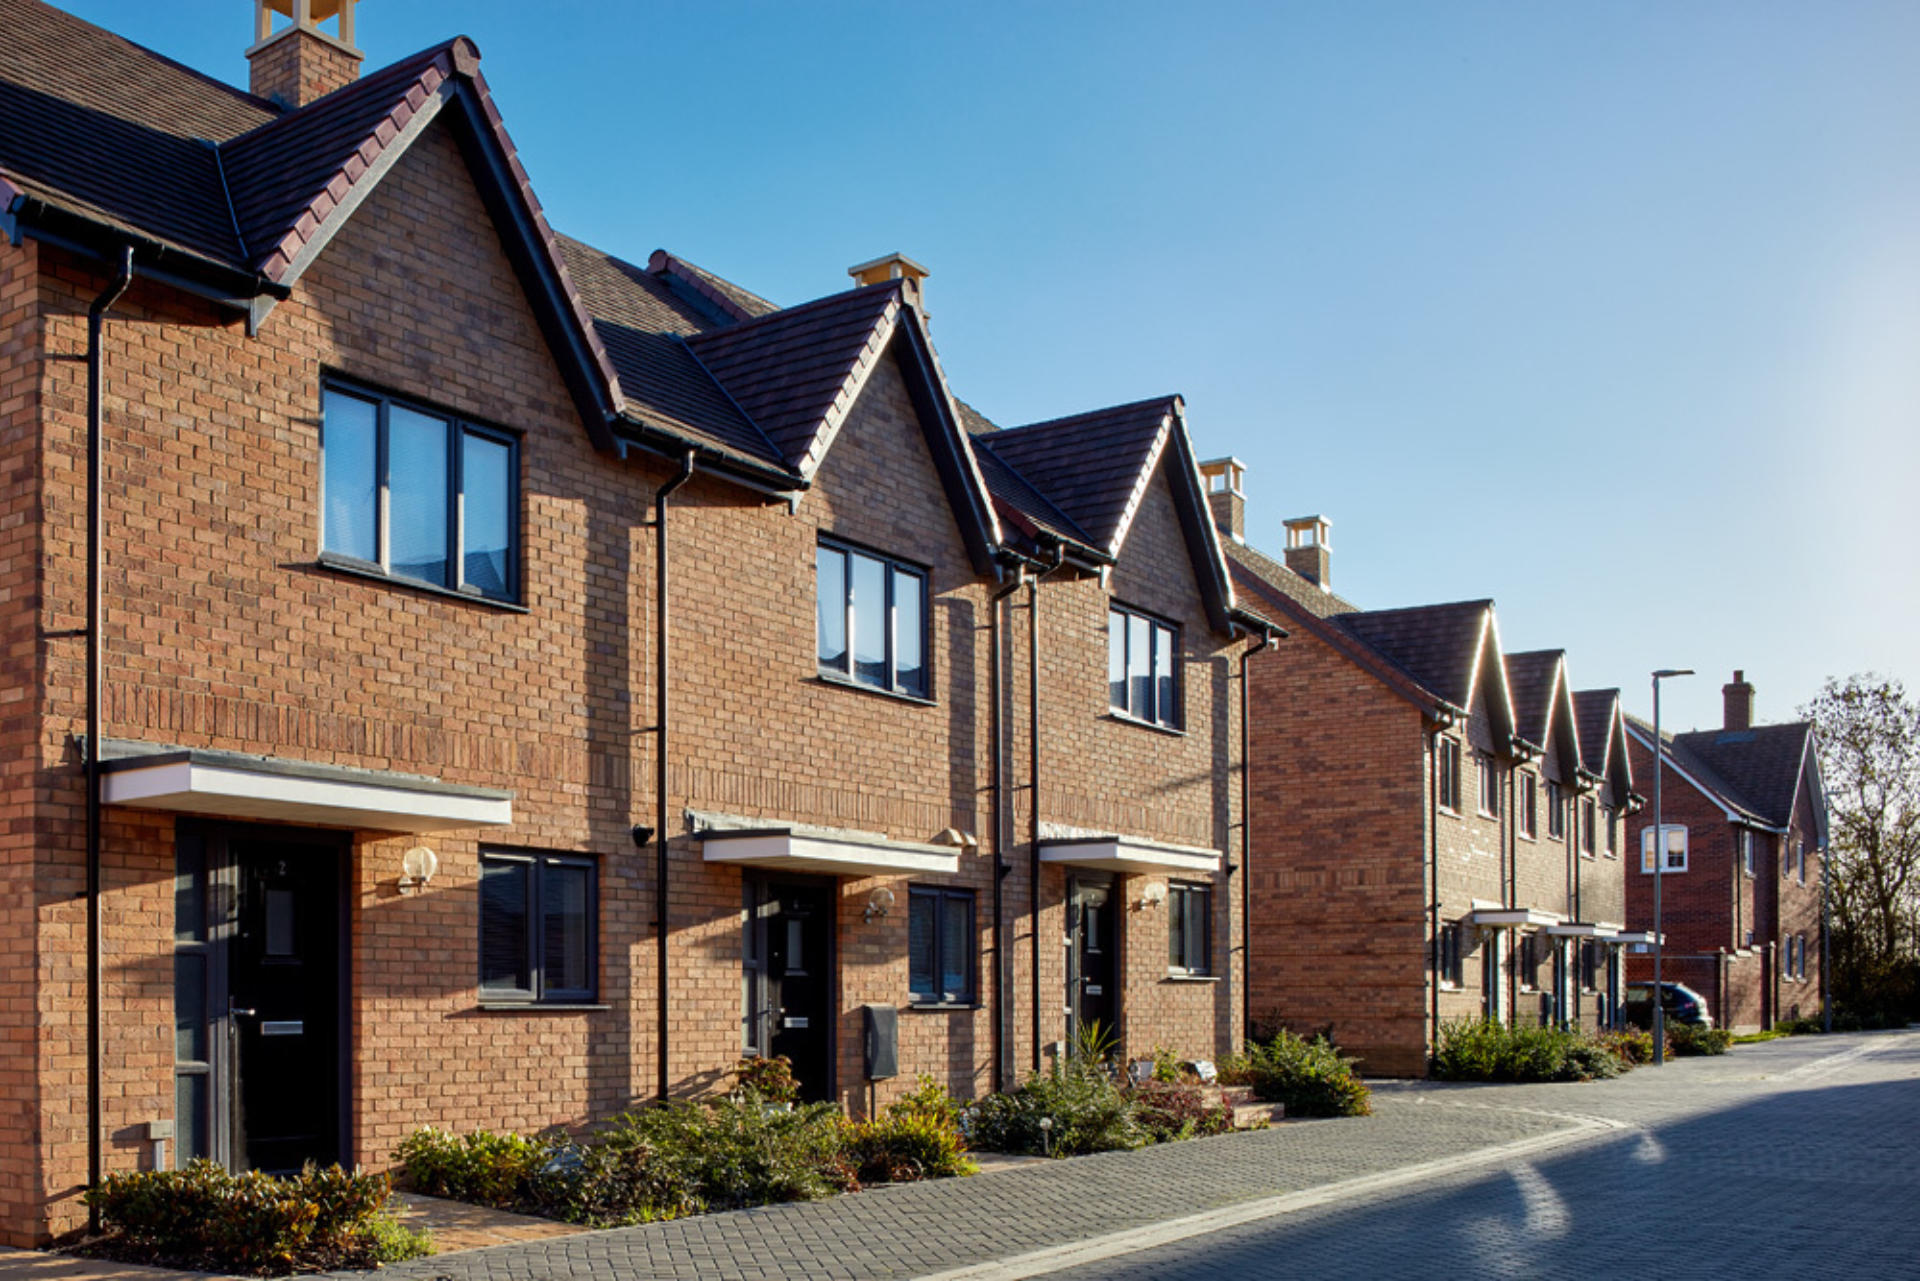 new build homes in Milton Keynes